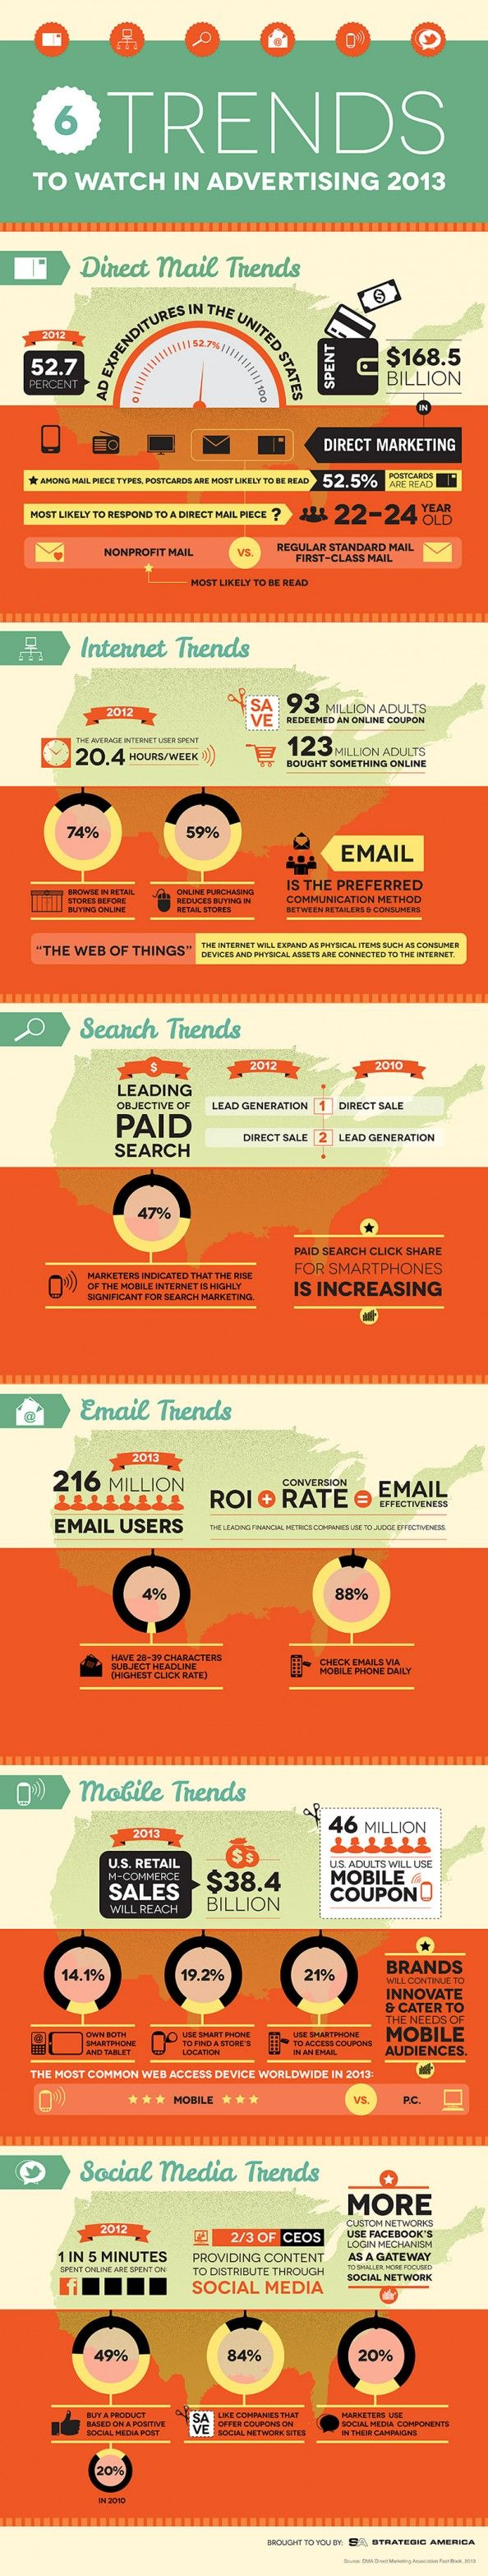 #Advertising Trends 2013